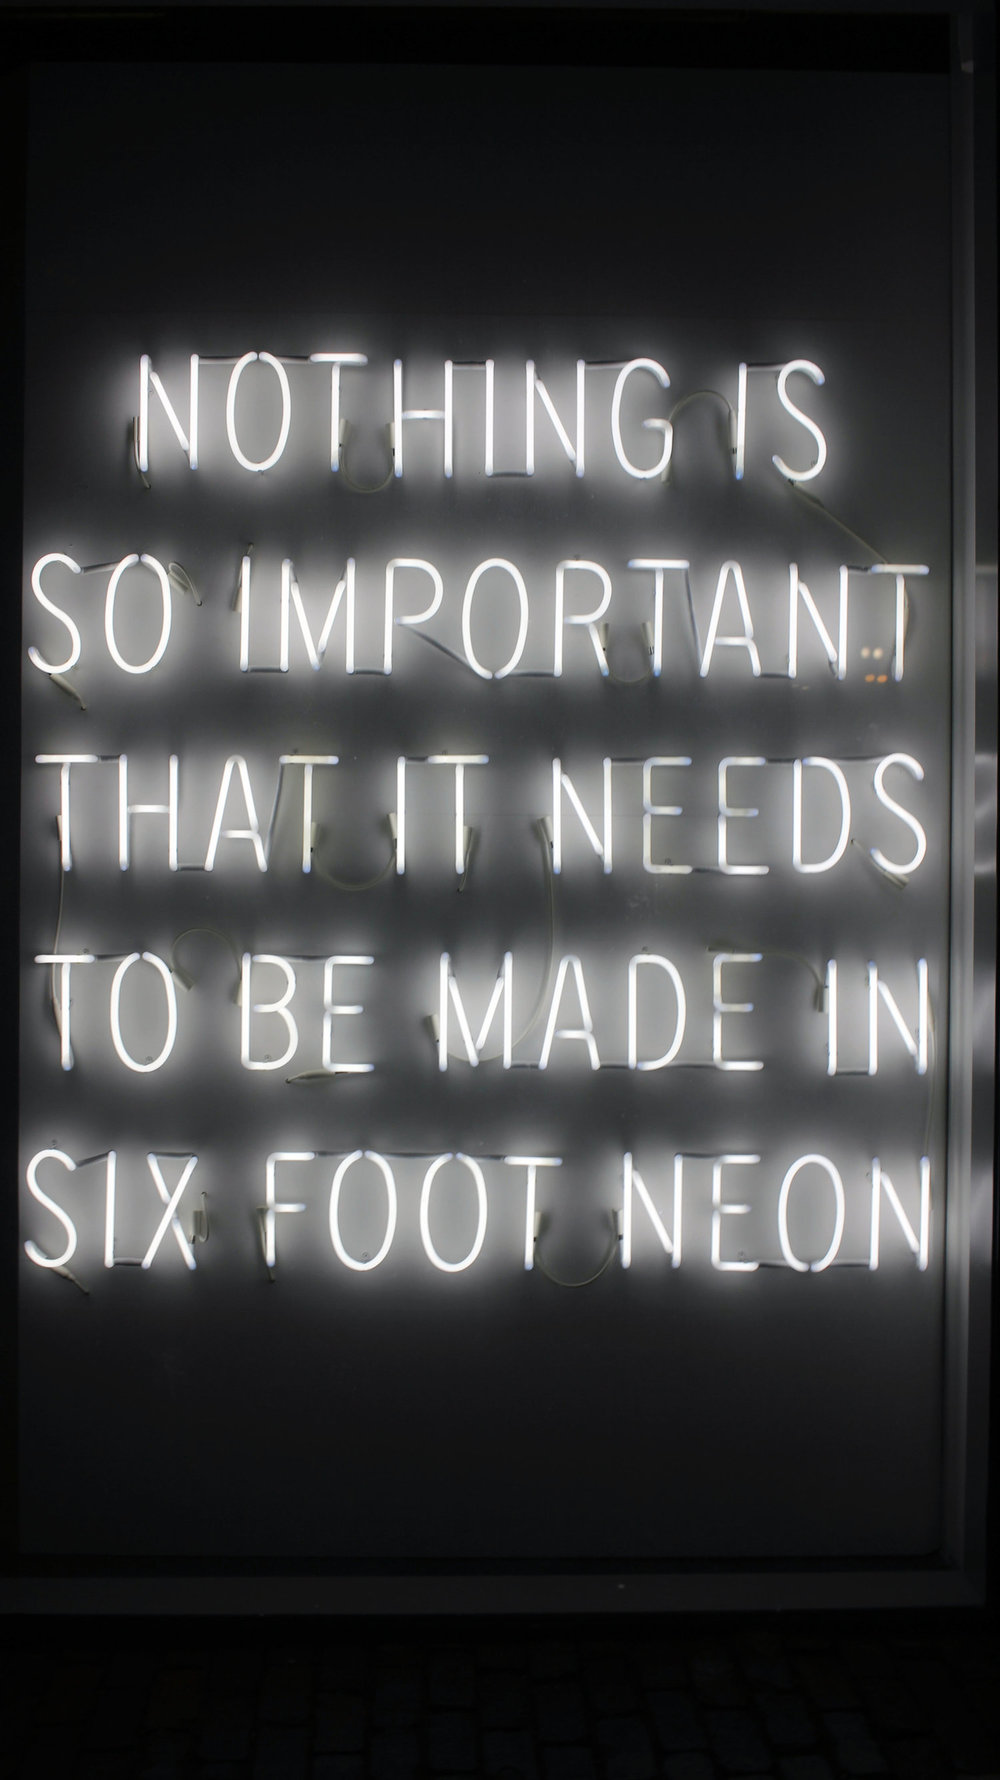 Nothing+is+so+important+it+needs+to+be+made+in+six+foot+neon.jpeg